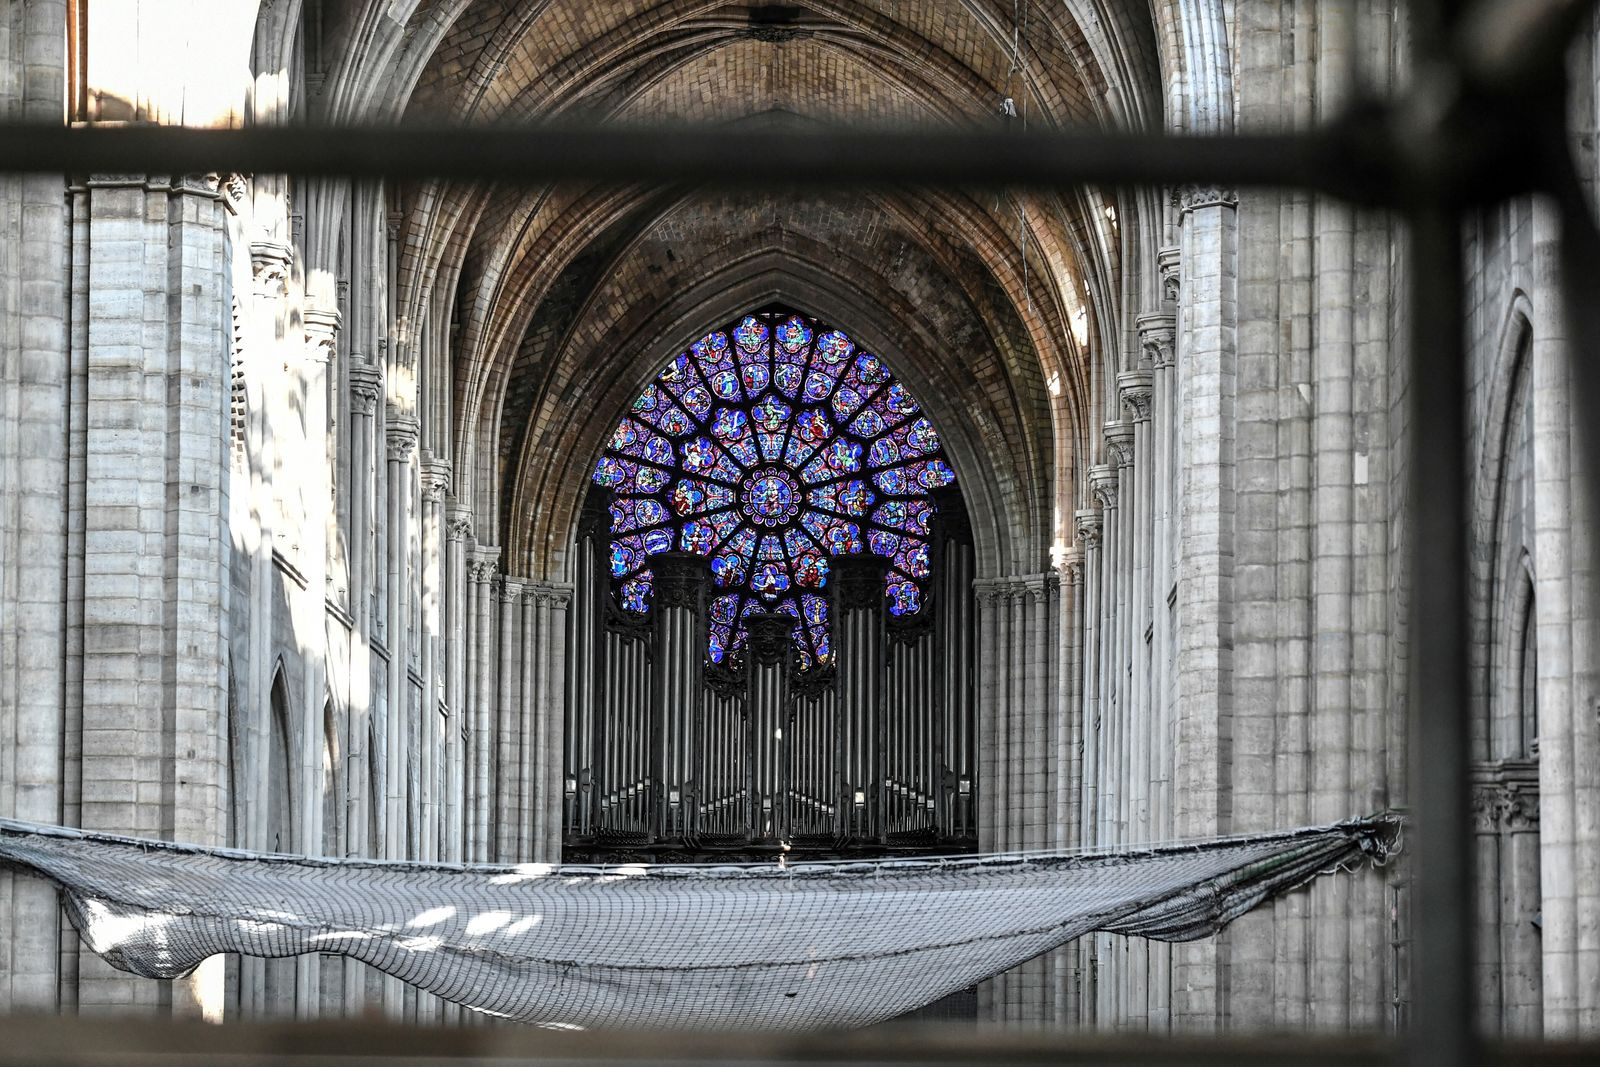 The big organ is pictured during preliminary work at the Notre-Dame de Paris Cathedral, Wednesday, July 17, 2019 in Paris. The chief architect of France's historic monuments says that three months after the April 15 fire that devastated Notre Dame Cathedral the site is still being secured. (Stephane de Sakutin/Pool via AP)